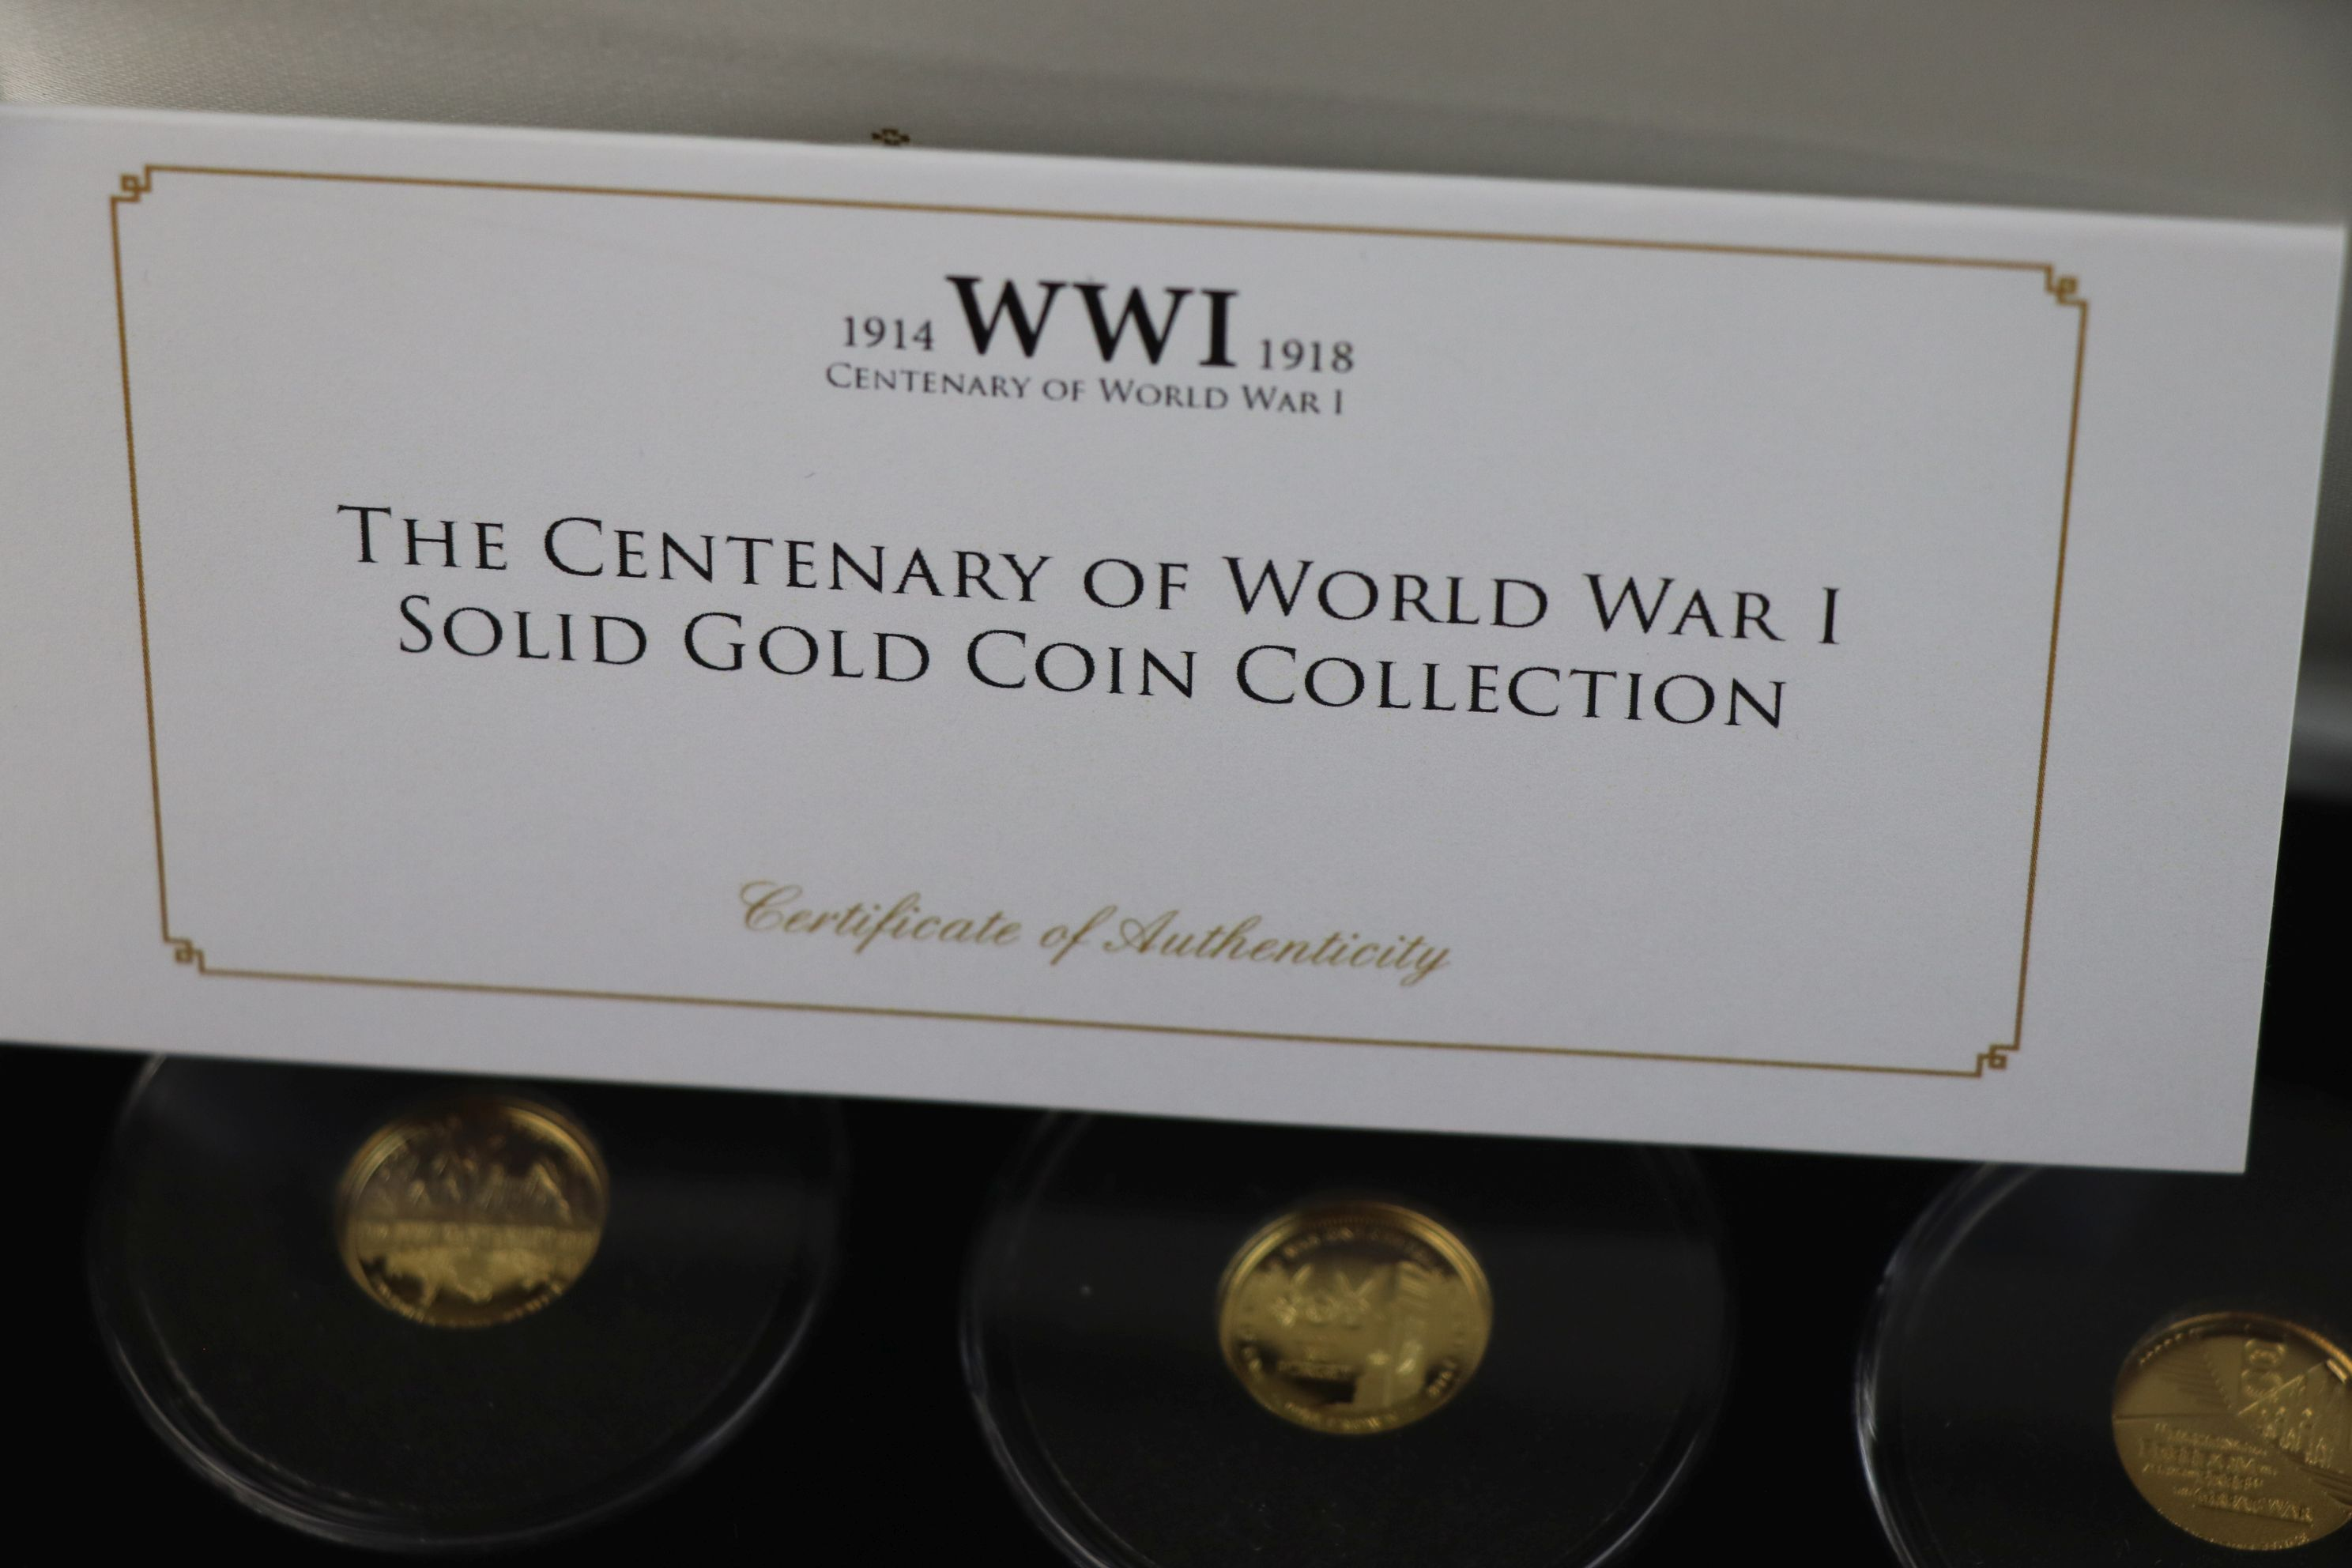 A cased Jubilee Mint limited edition The Centenary of World War One 9ct gold three coin set, - Image 6 of 7